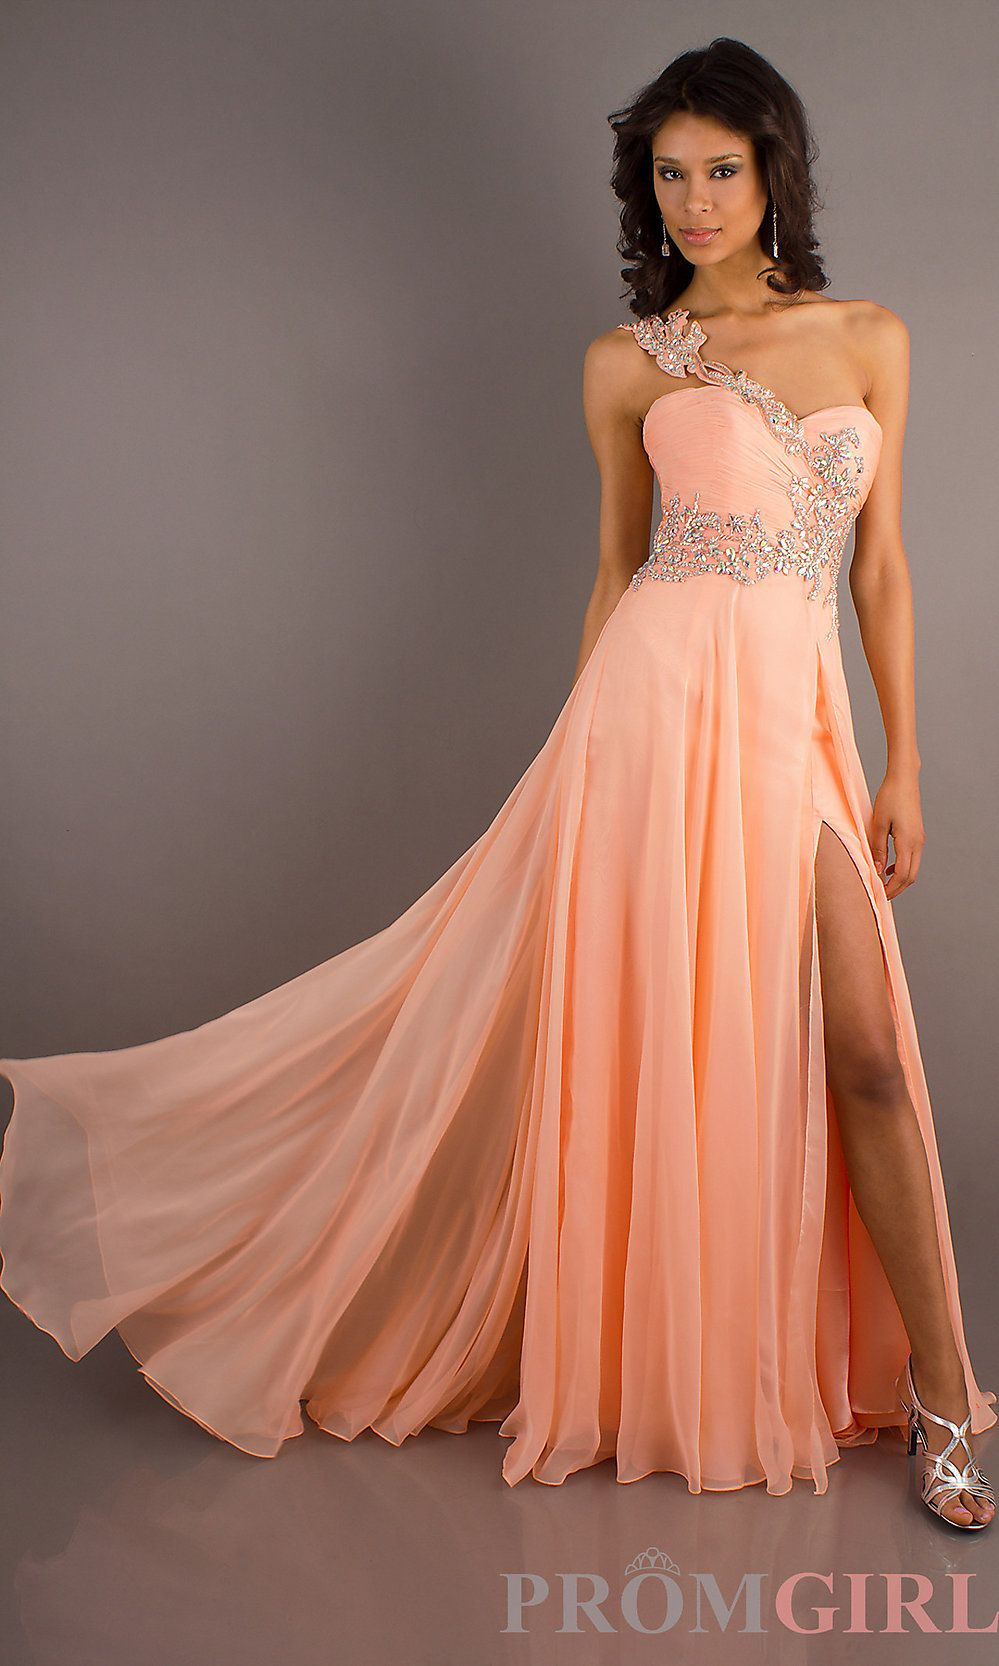 10 Best images about Peach &amp Coral Wedding Bridal Evening Gowns on ...